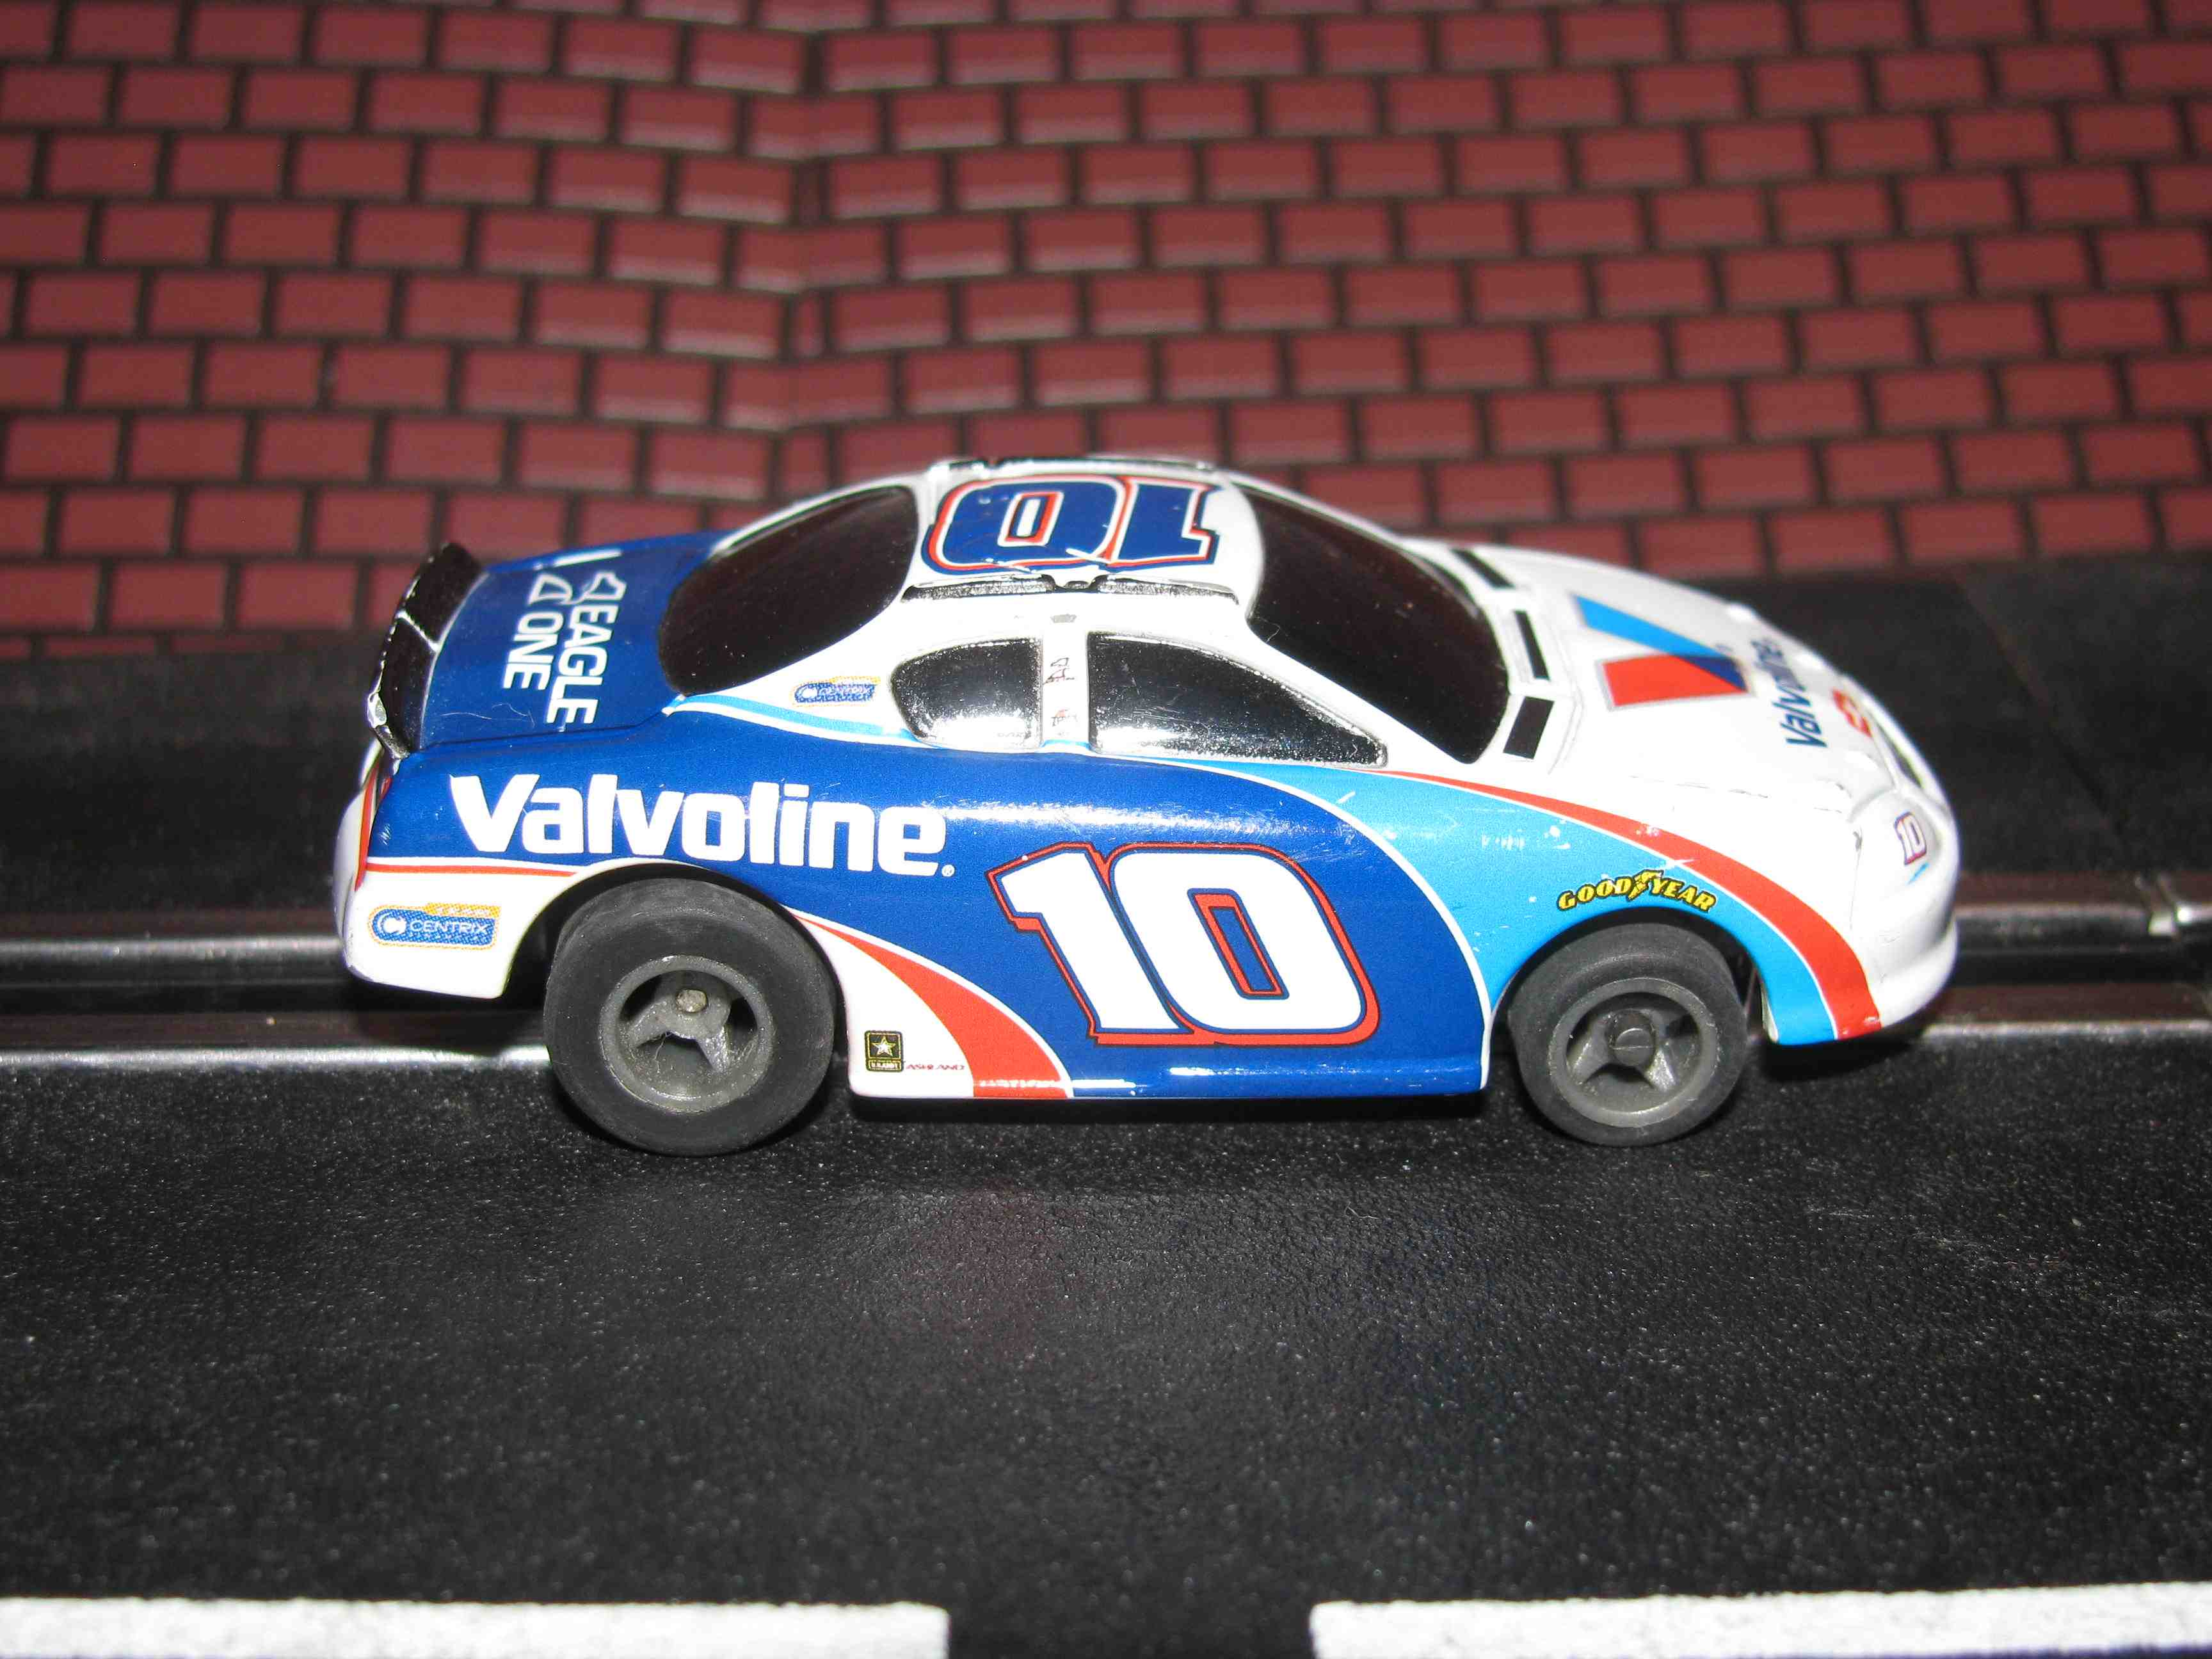 * SOLD * Tyco Like-Like HO Slot Car #10 Monte Carlo (Valvoline) with Guide Post